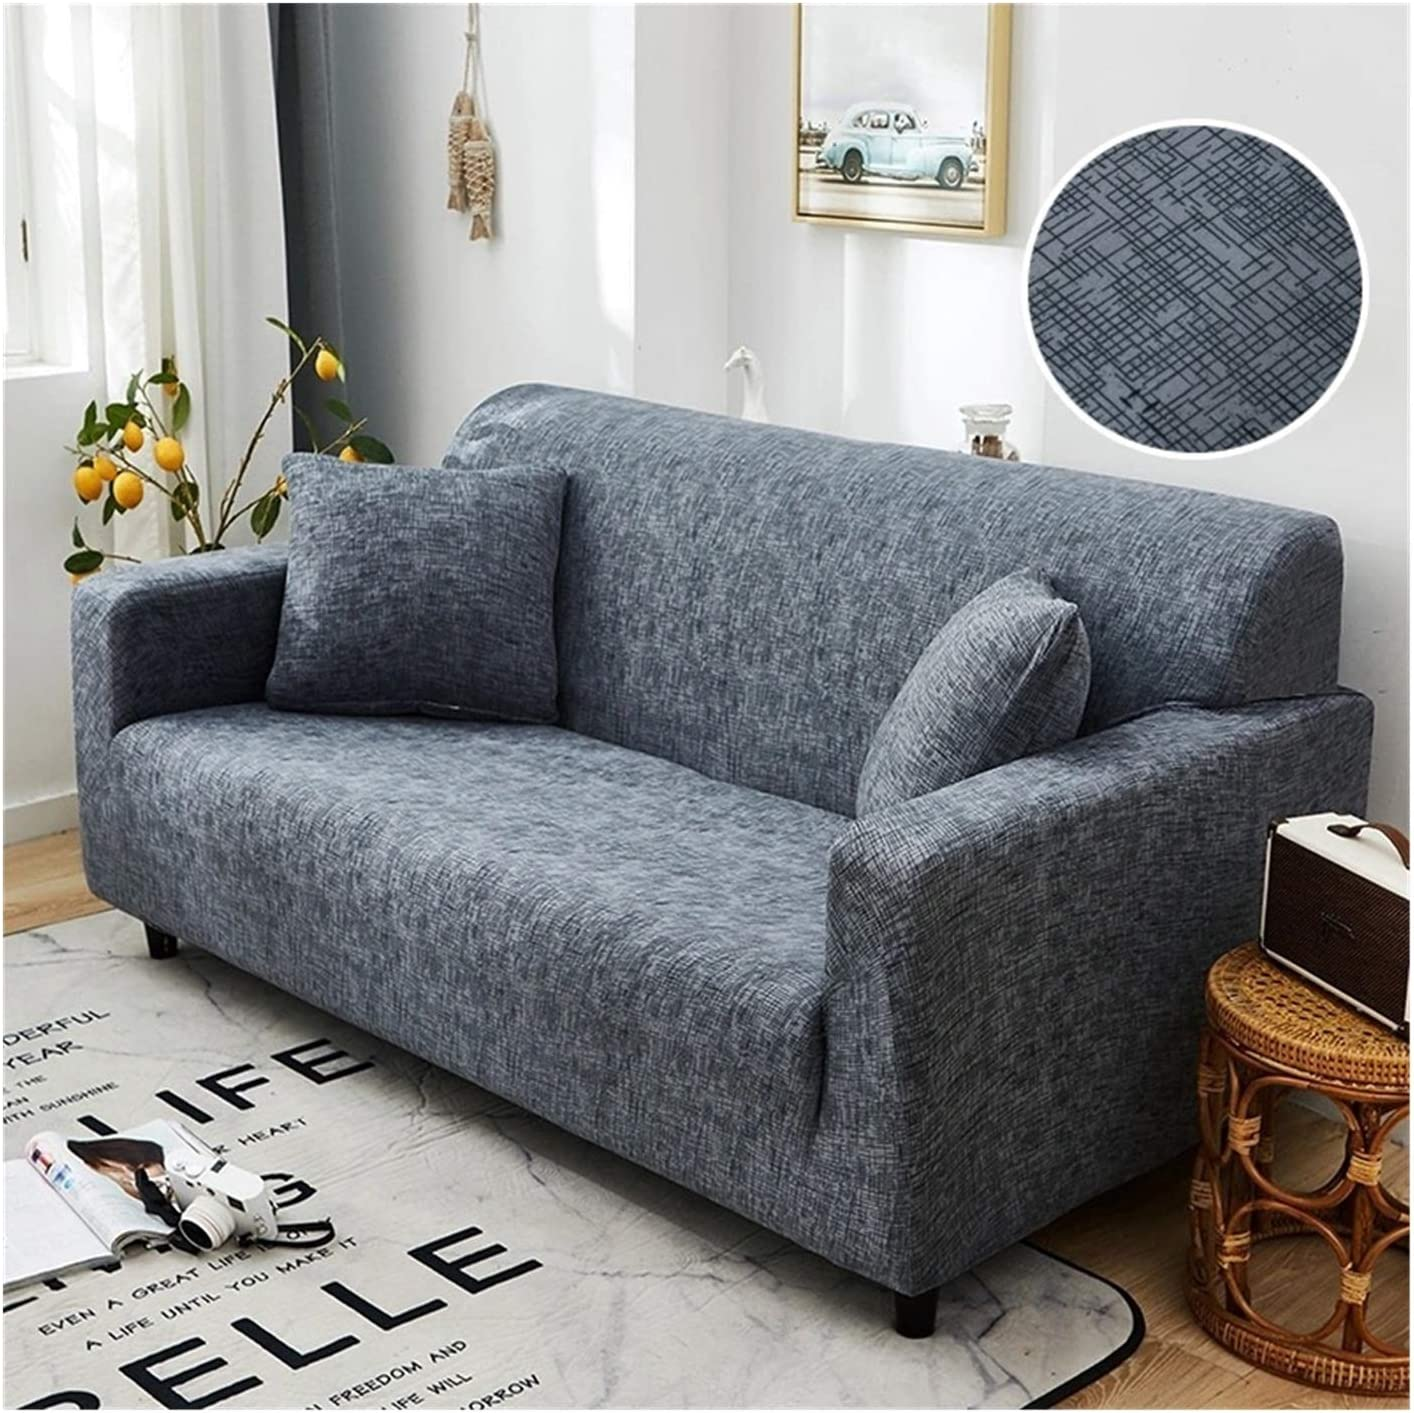 JPMSB Cross discount Pattern Elastic Sofa All-Inclusive Cover So free shipping Stretch